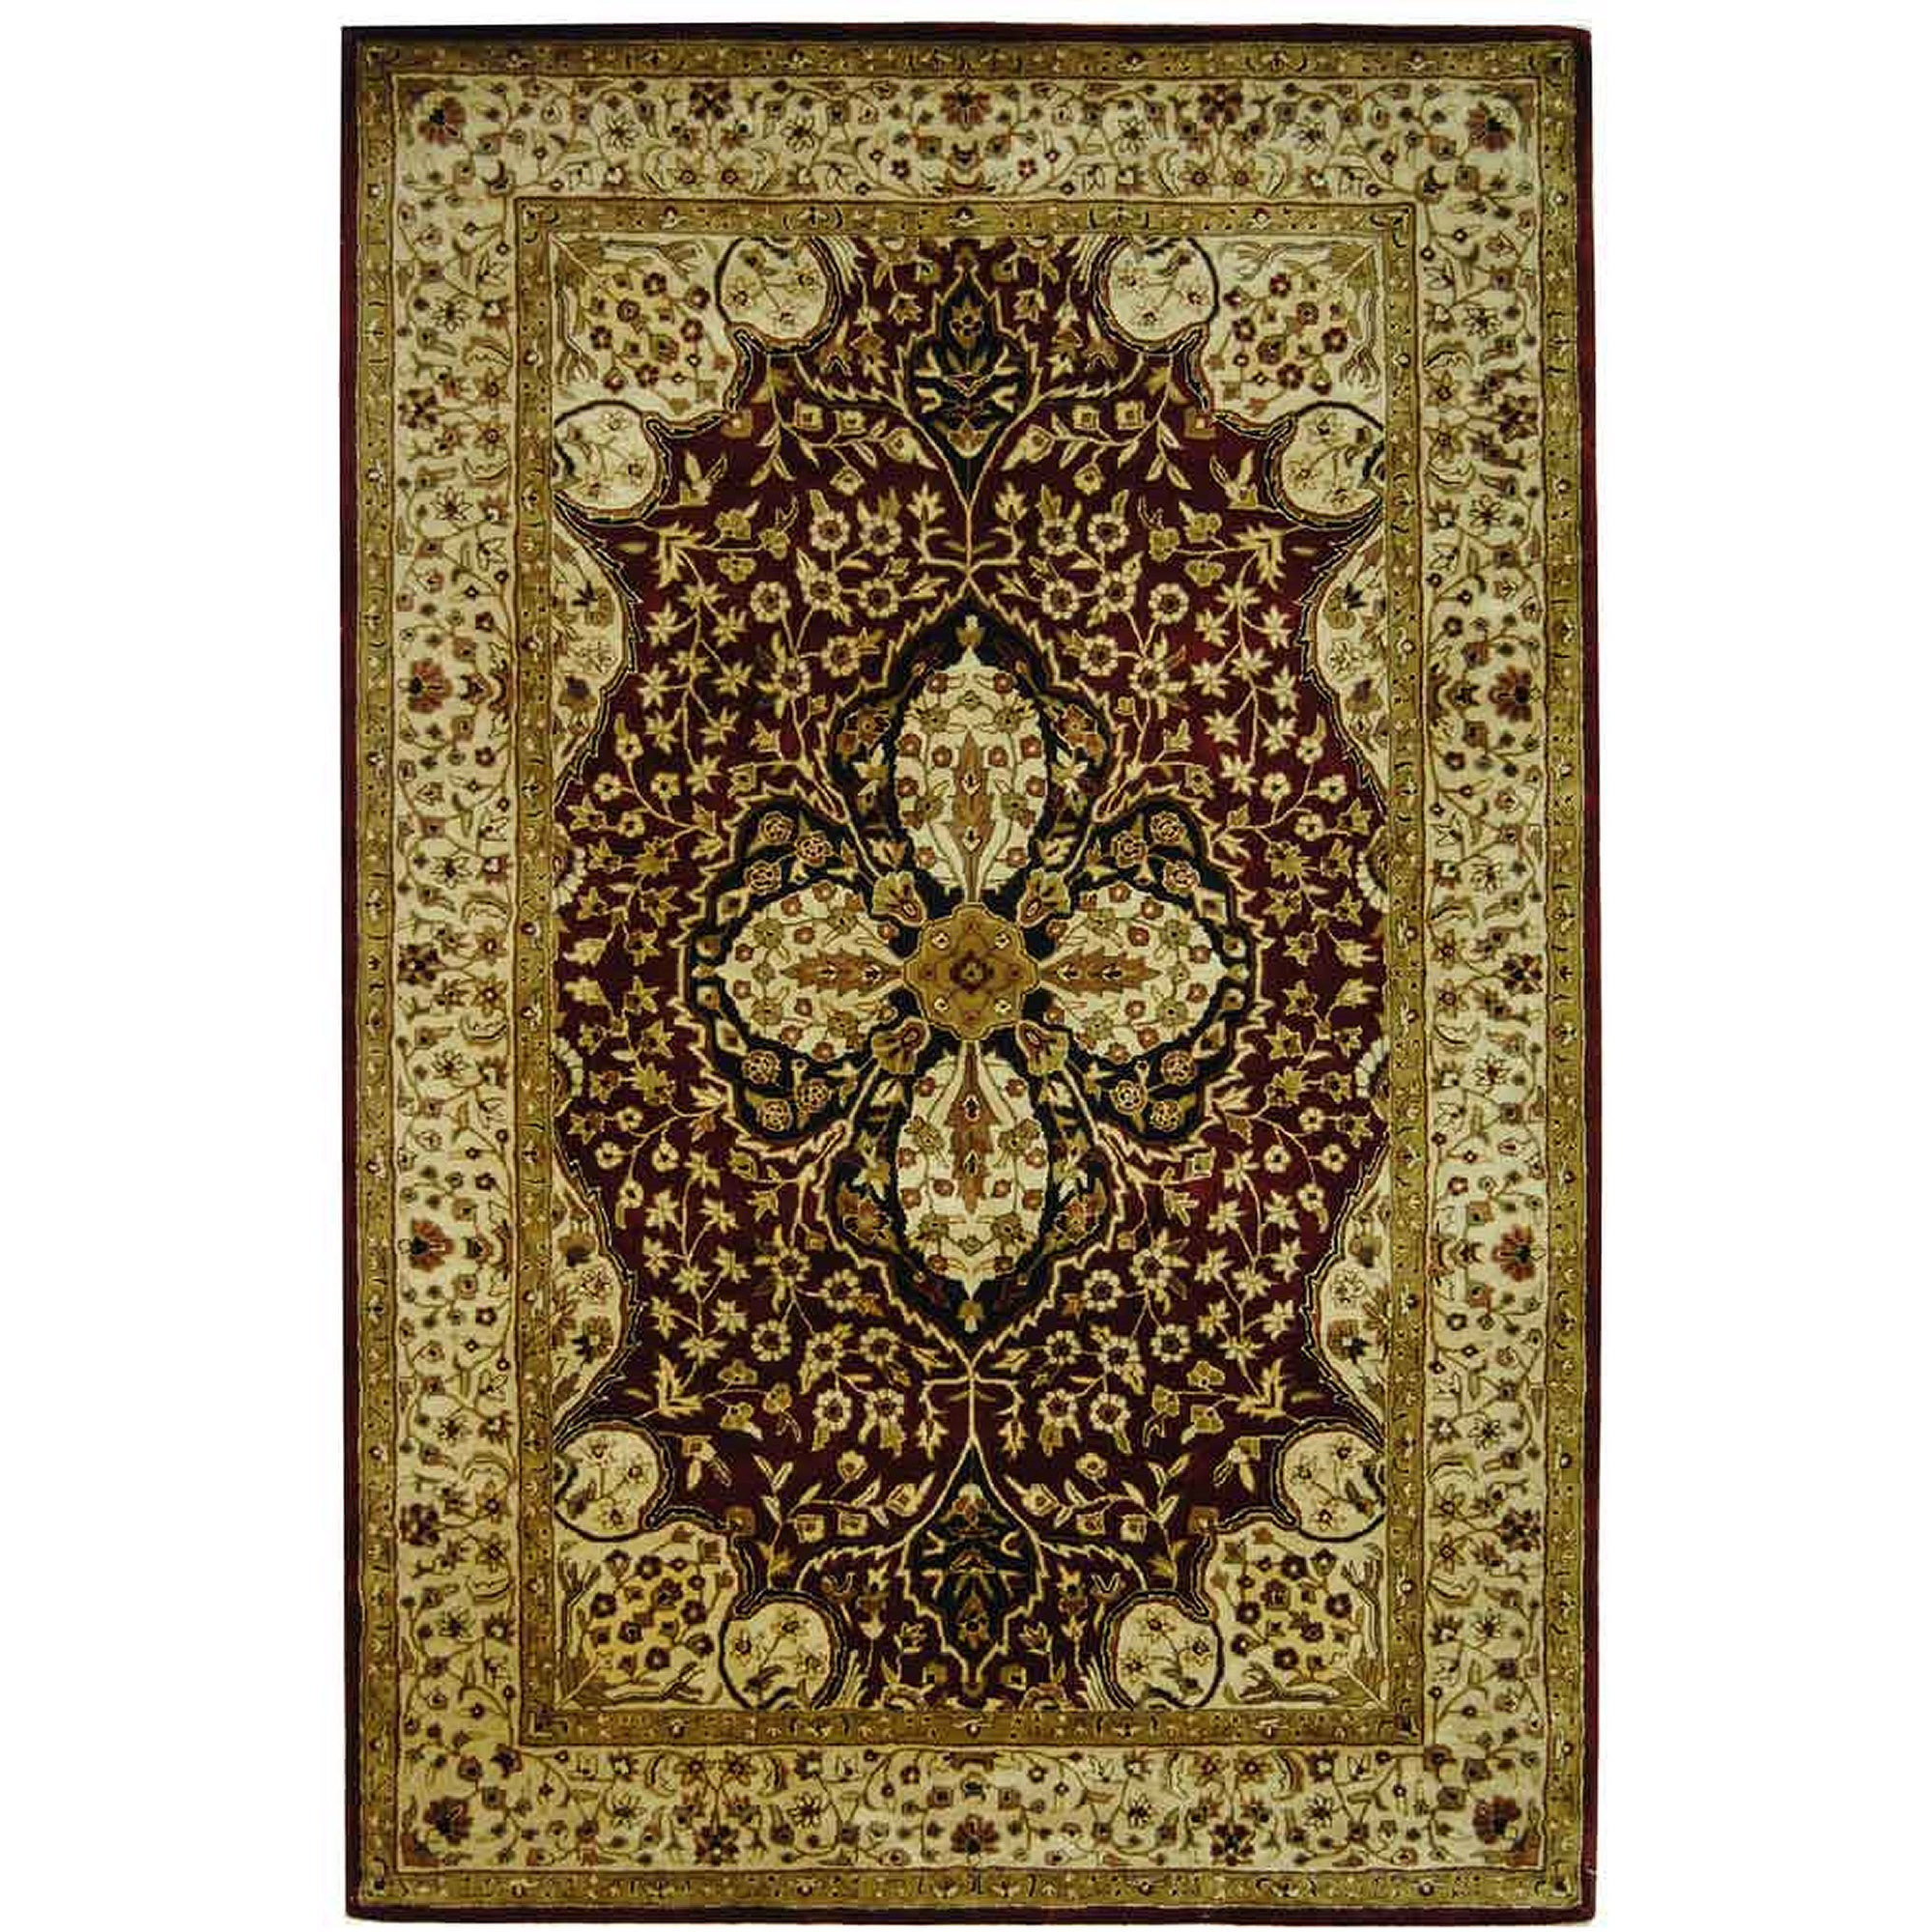 Safavieh Persian Legend Caryn Hand Tufted New Zealand Wool Area Rug, Red and Beige